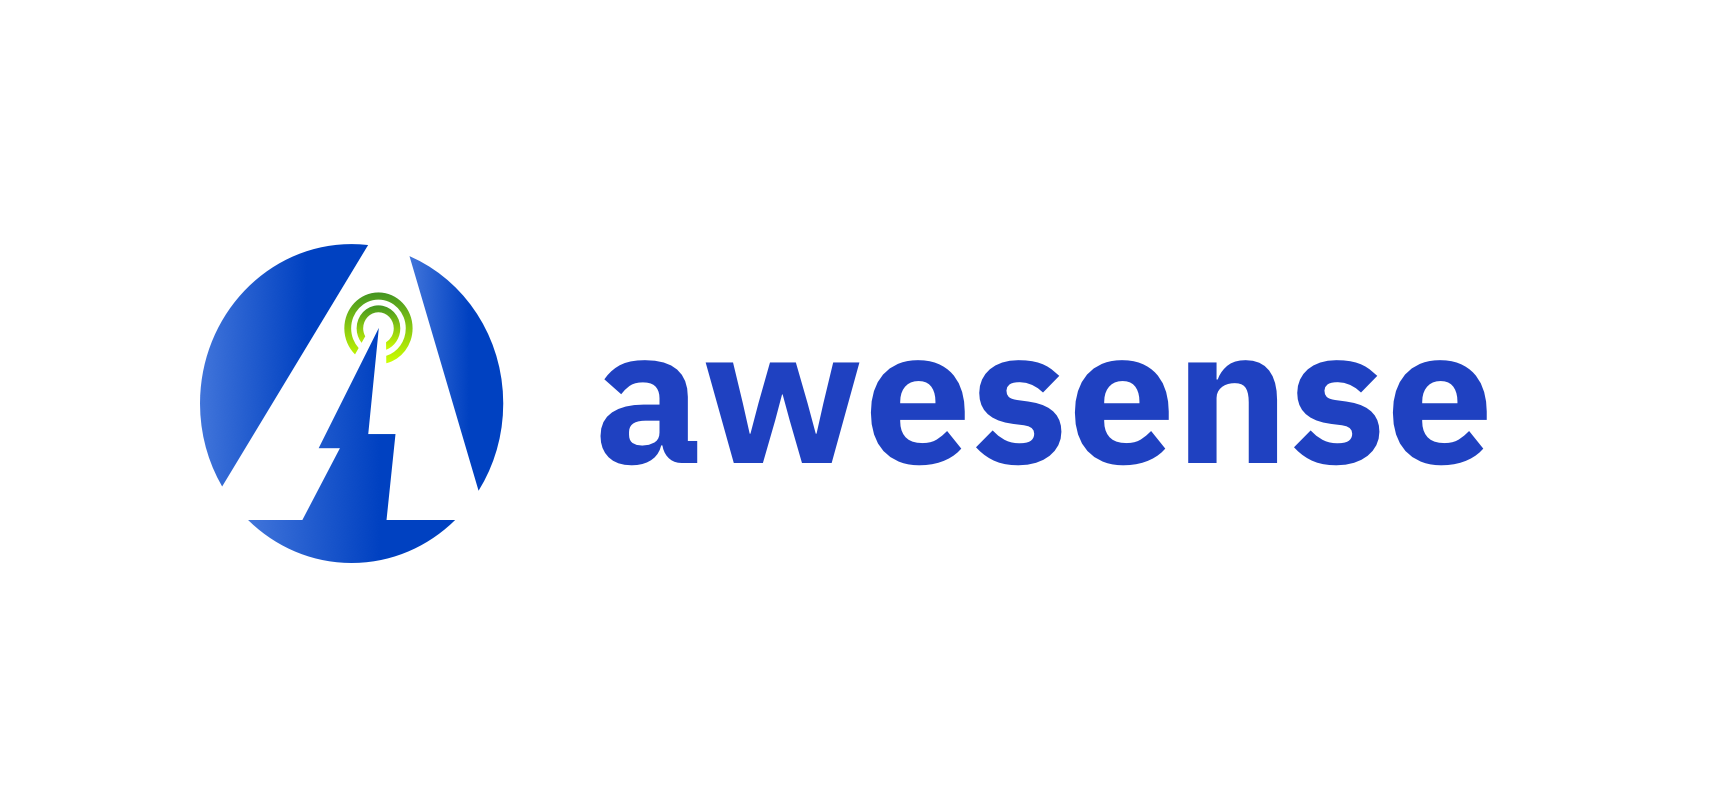 - Awesense works with electric utilities to improve the reliability, reliance and efficiency of their grid through our cloud-based analytics platform, True Geospatial Intelligence (TGI). TGI allows utilities to modernize their grid by harnessing energy monitoring, geospatial data, SCADA, IoT, and analytics. Our goal is to transform the planet into one that is fueled by modern, reliable and clean energy.